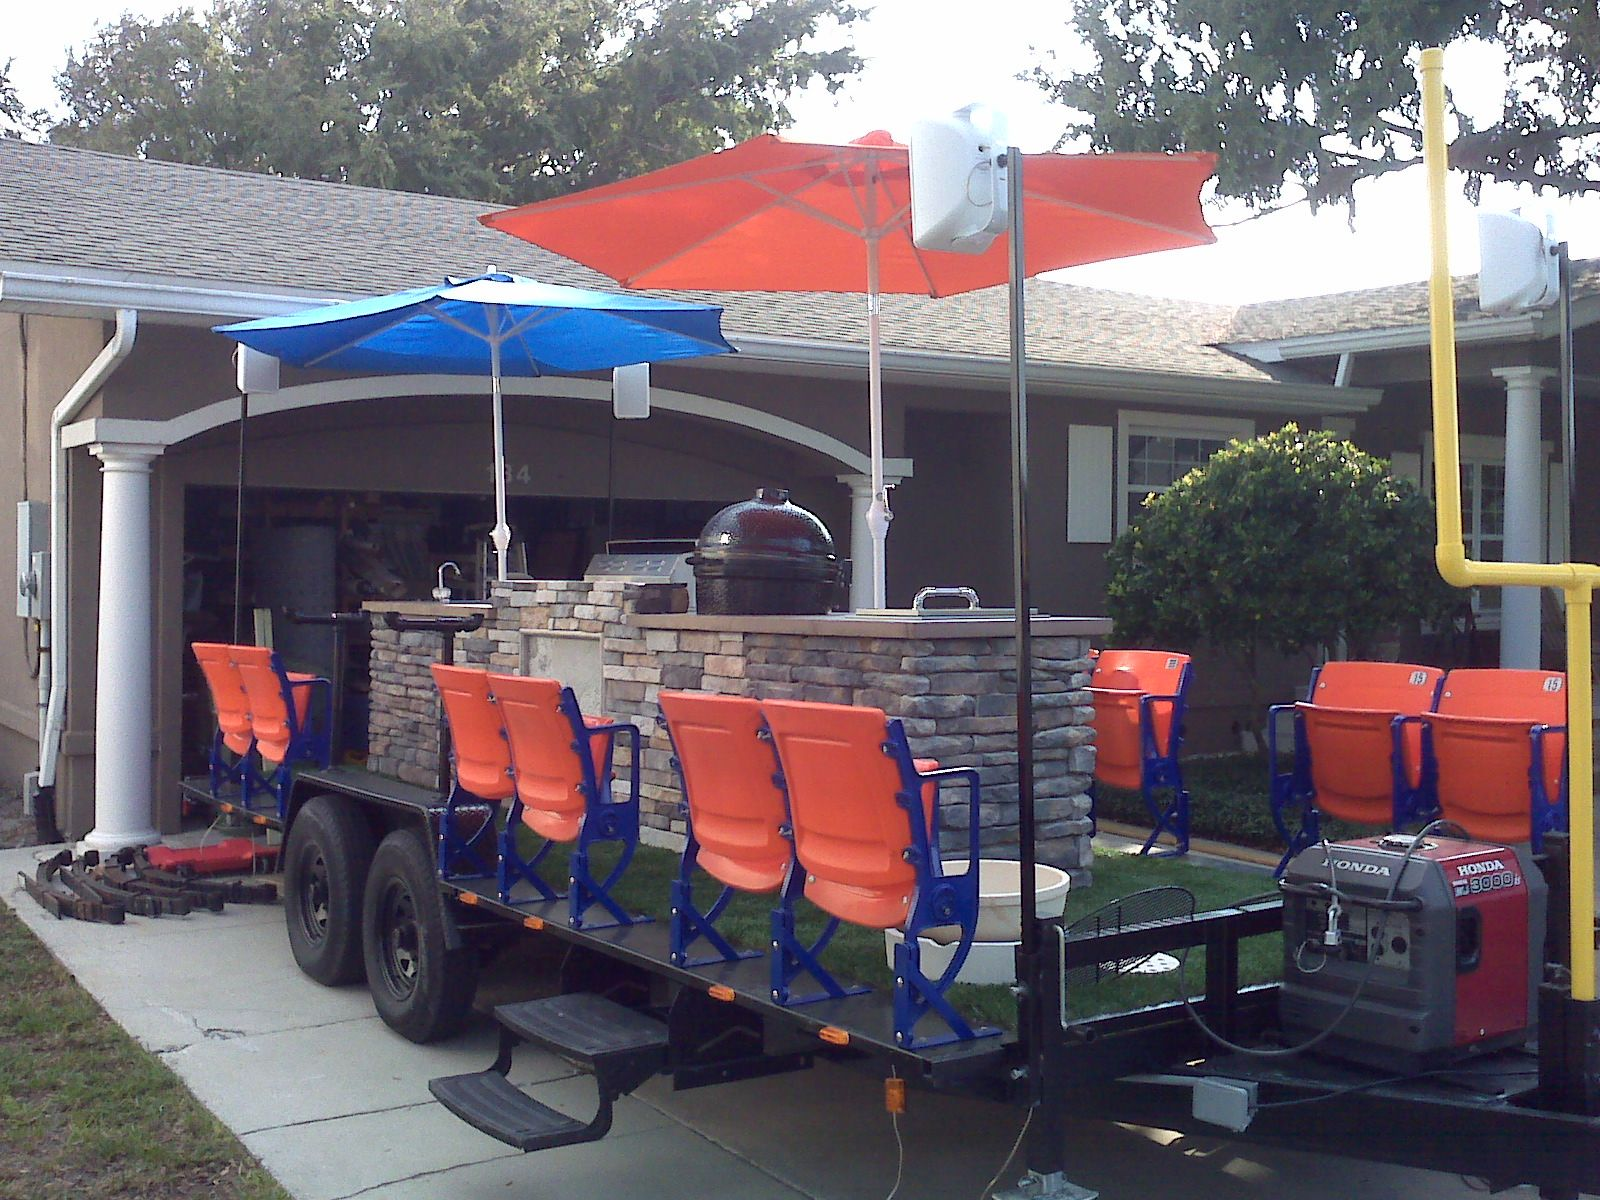 StadiumSeating.net customer: Coolest tailgate trailer ever ...